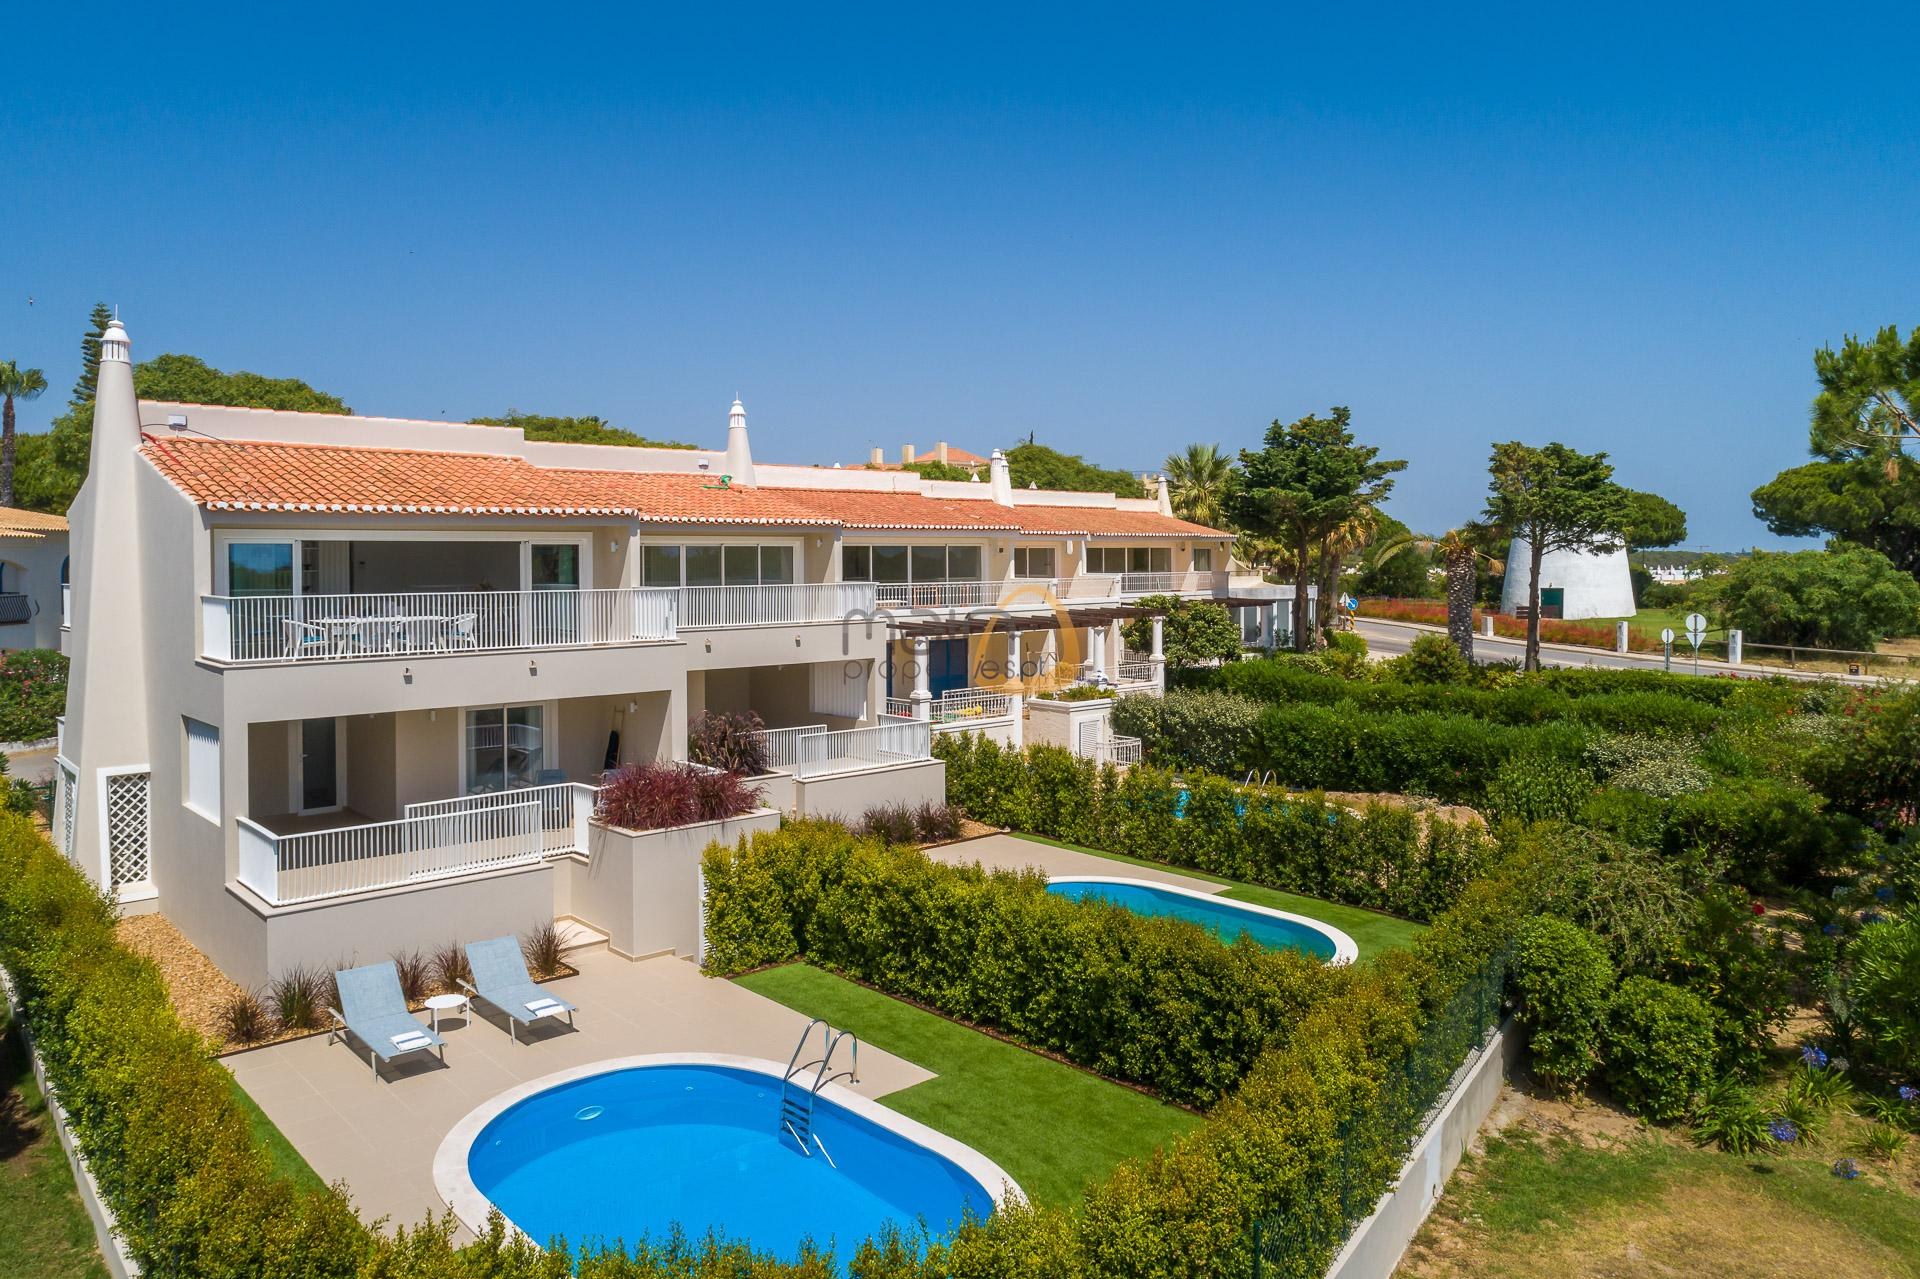 villa-in-vale-do-lobo-algarve-golden-triangle-portugal-property-real-estate-mainproperties-mp140vdl-0